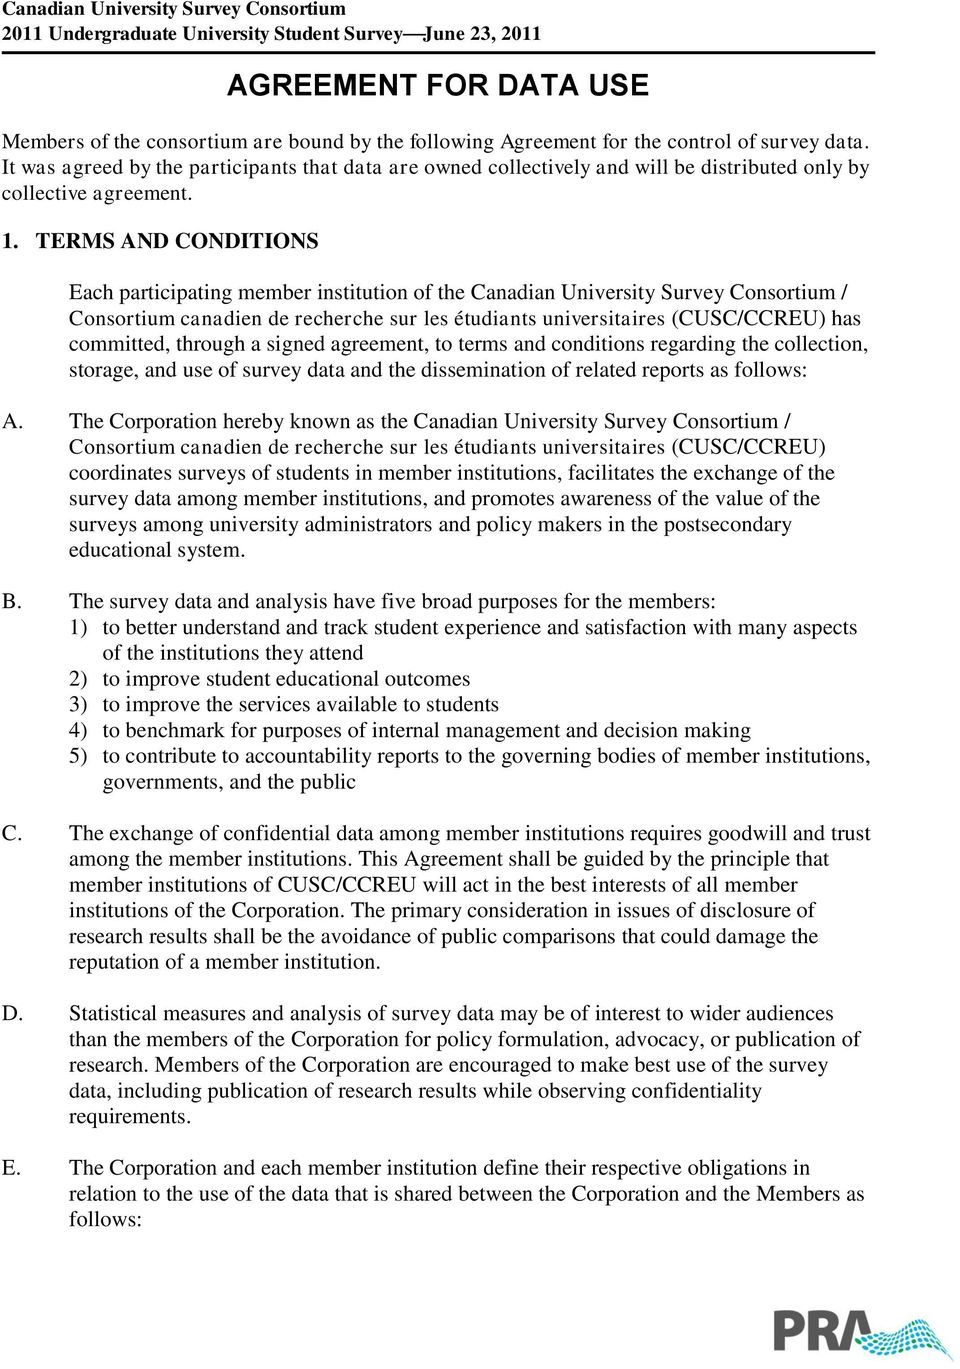 . TERMS AND CONDITIONS Each participating member institution of the Canadian University Survey Consortium / Consortium canadien de recherche sur les étudiants universitaires (CUSC/CCREU) has